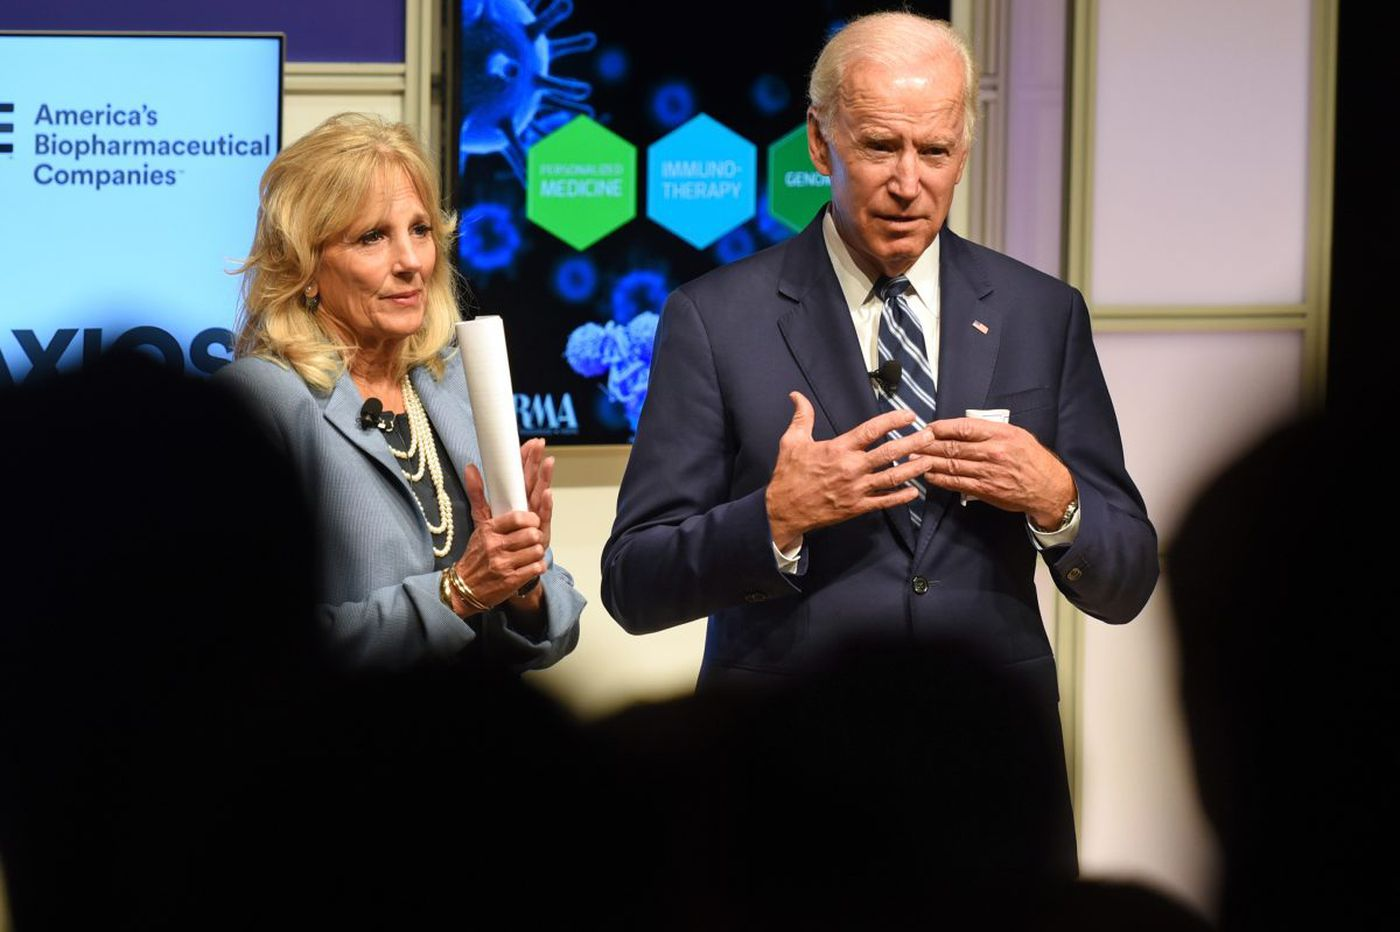 Joe Biden in Philly: To cure cancer, data must be shared